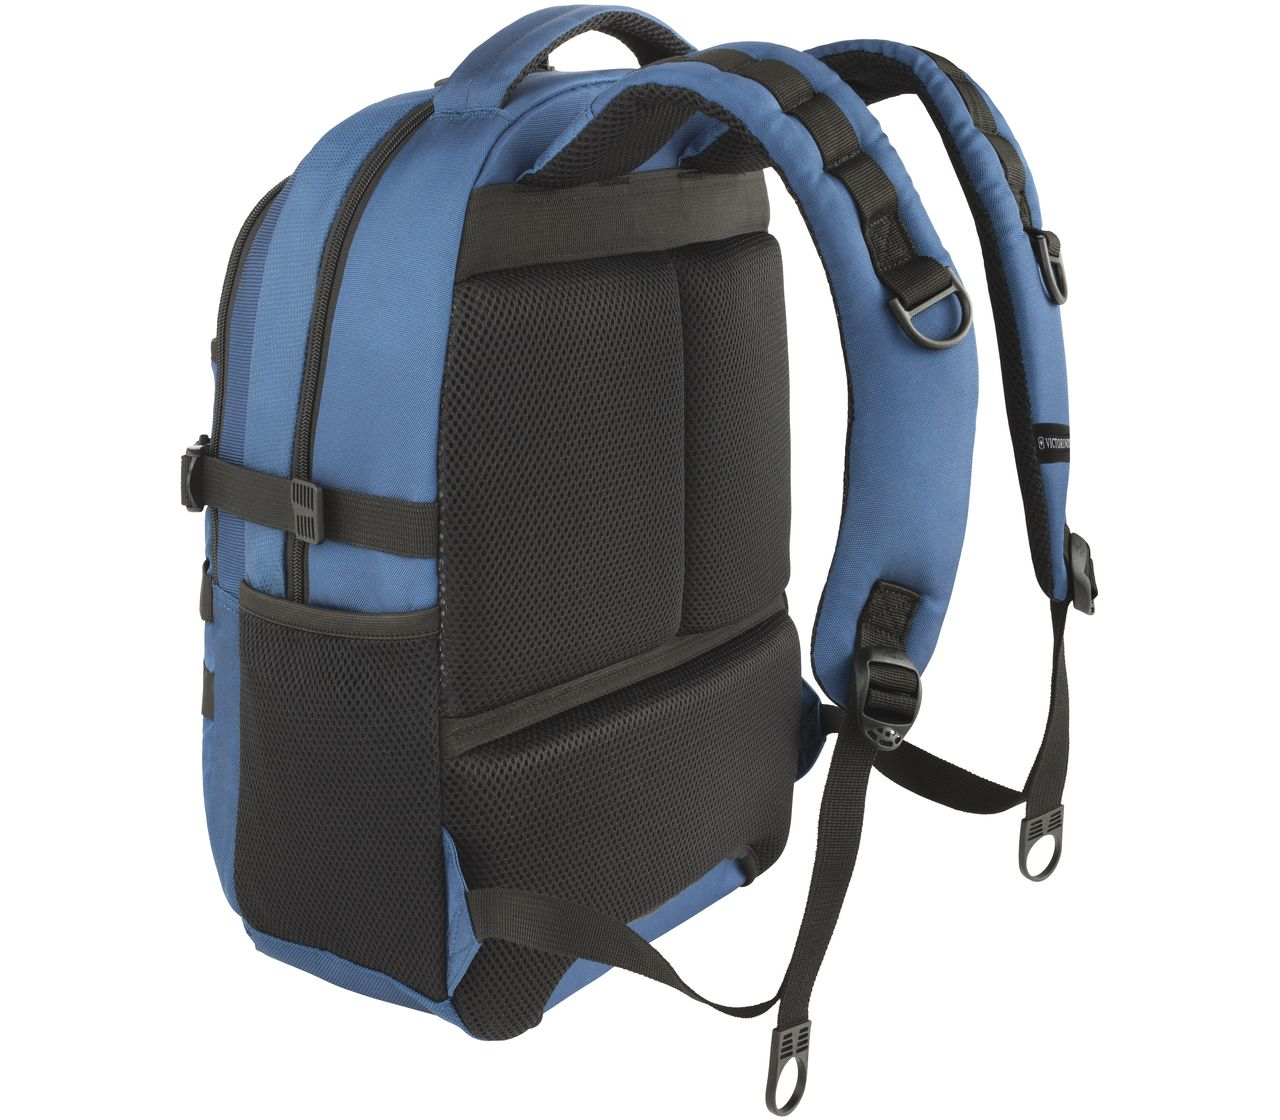 Victorinox Cadet Laptop Backpack In Blue 31105009